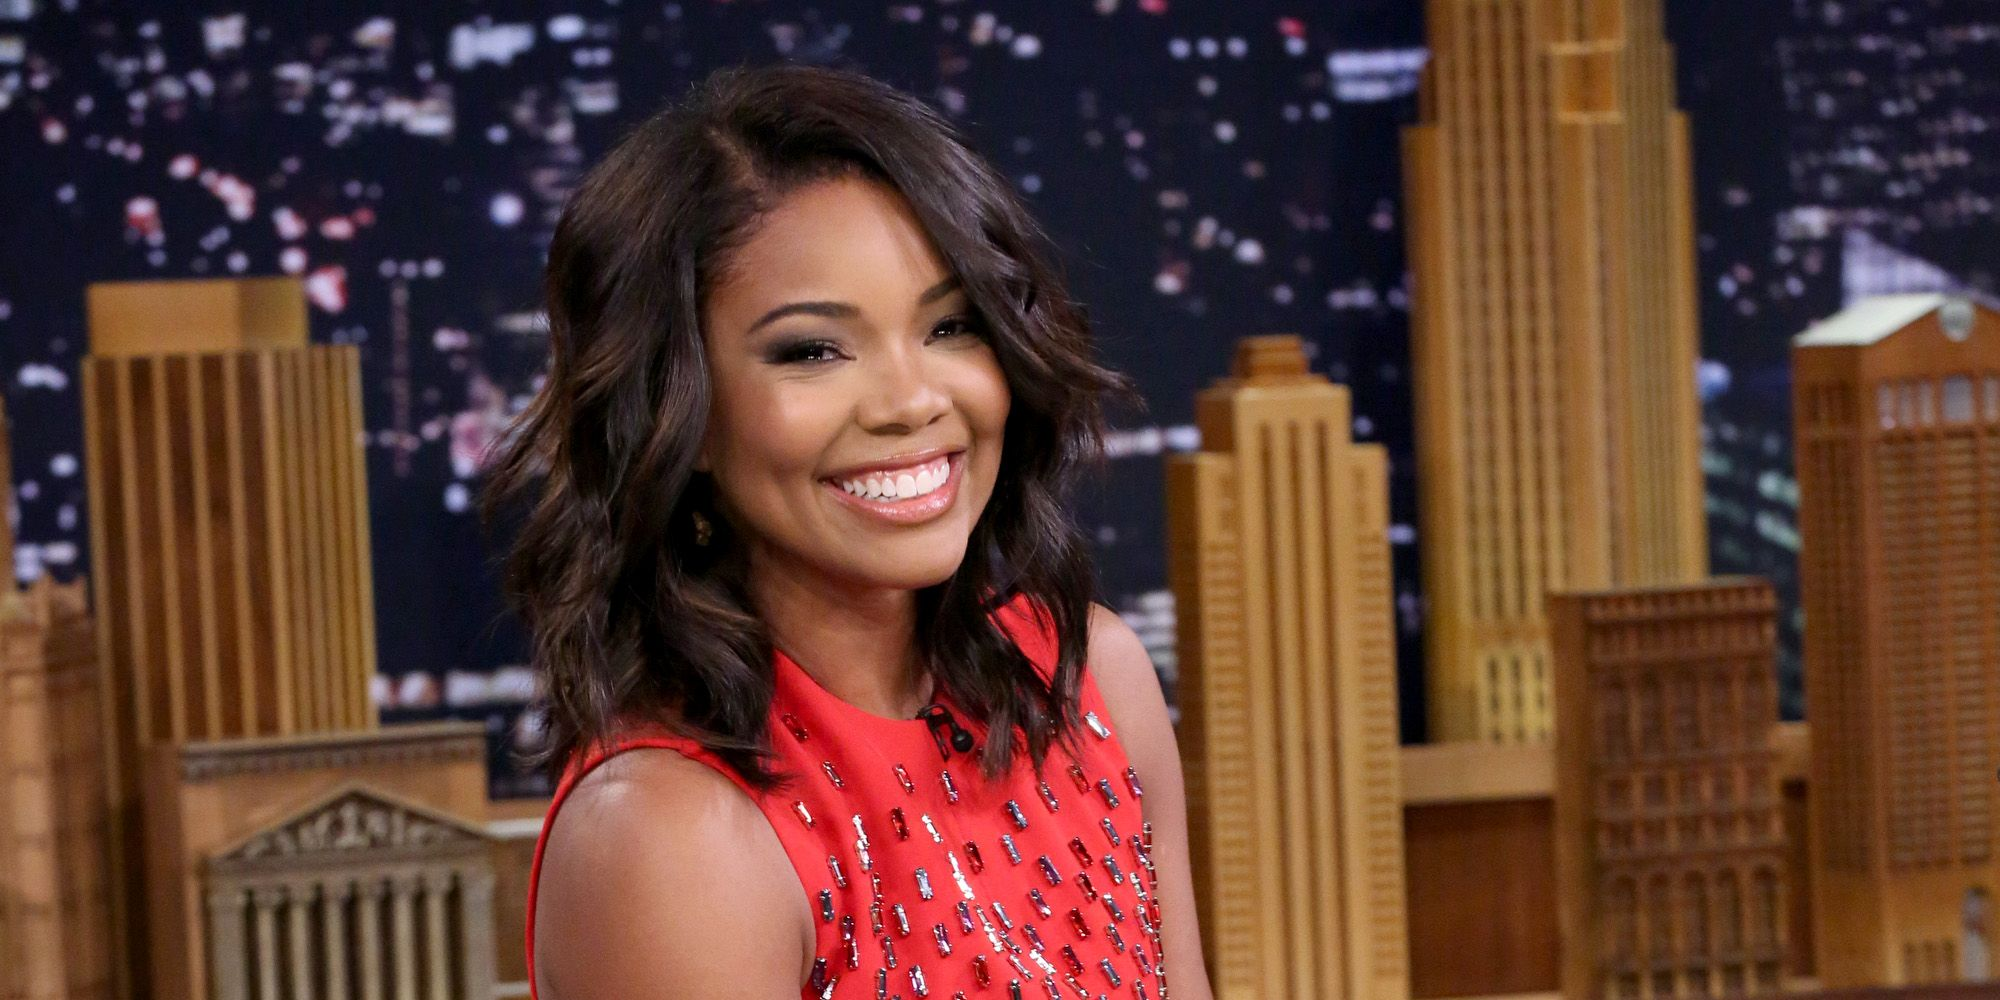 Gabrielle Union Responds After Being Seen in the Background of Tristan Thompson Cheating Footage